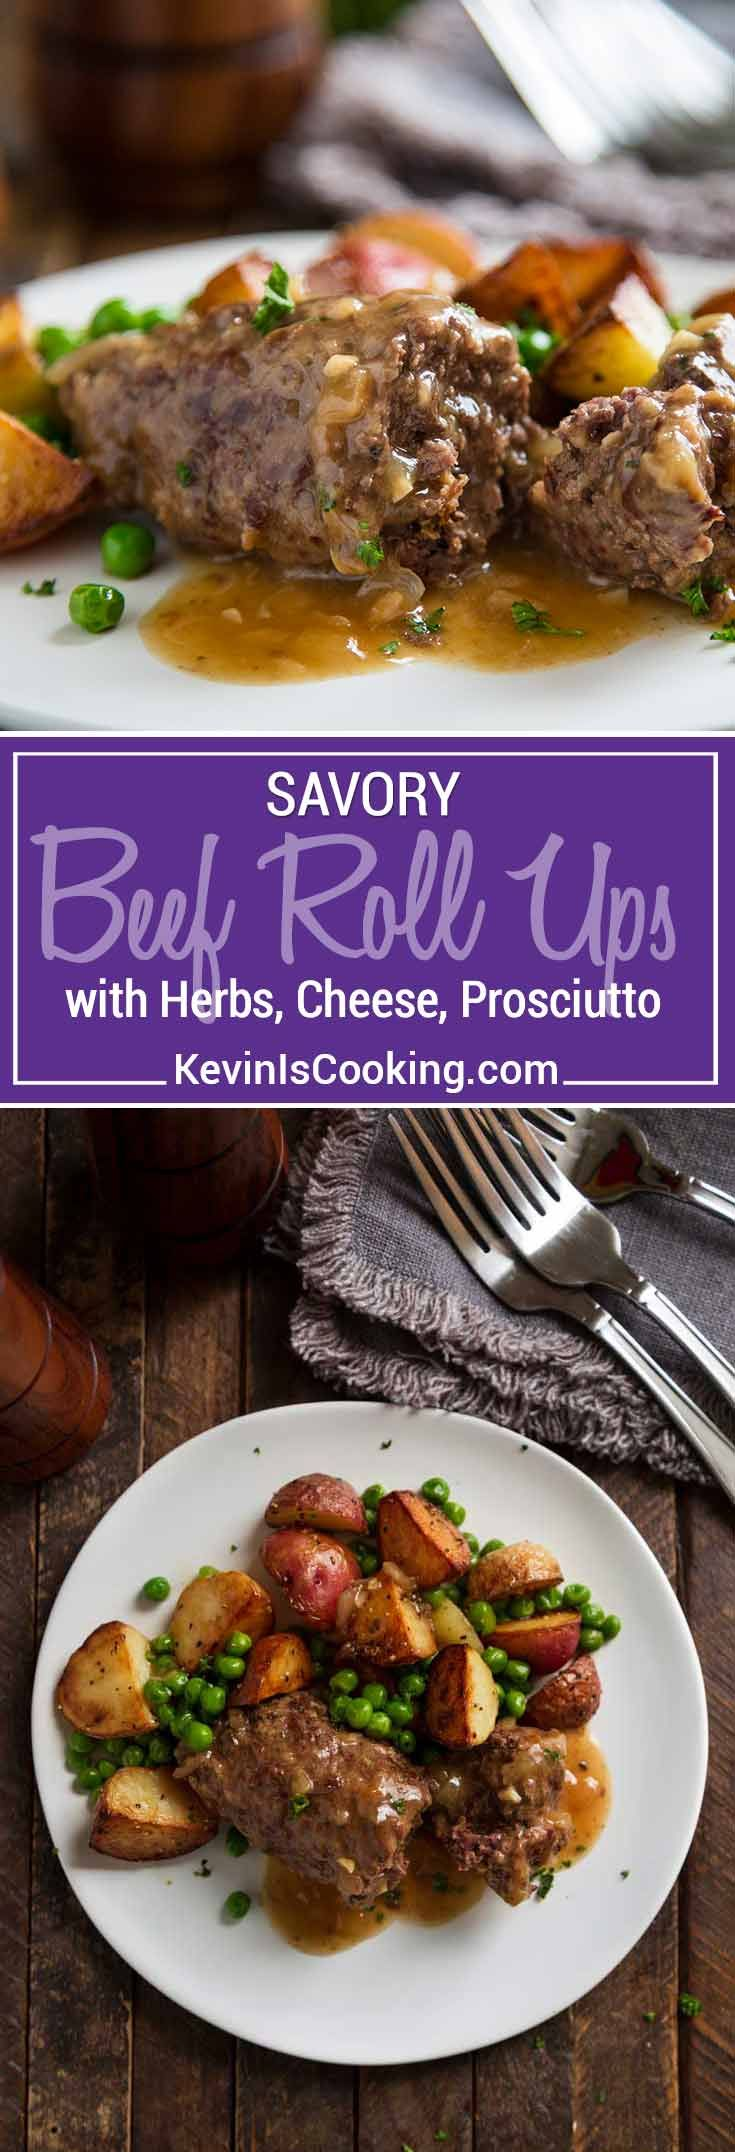 Beef Roll Ups - Top round steak gets pounded thin, spread with an herb and cheese paste, prosciutto, rolled and sautéed - so delicious. Sauce is amazing! via @keviniscooking